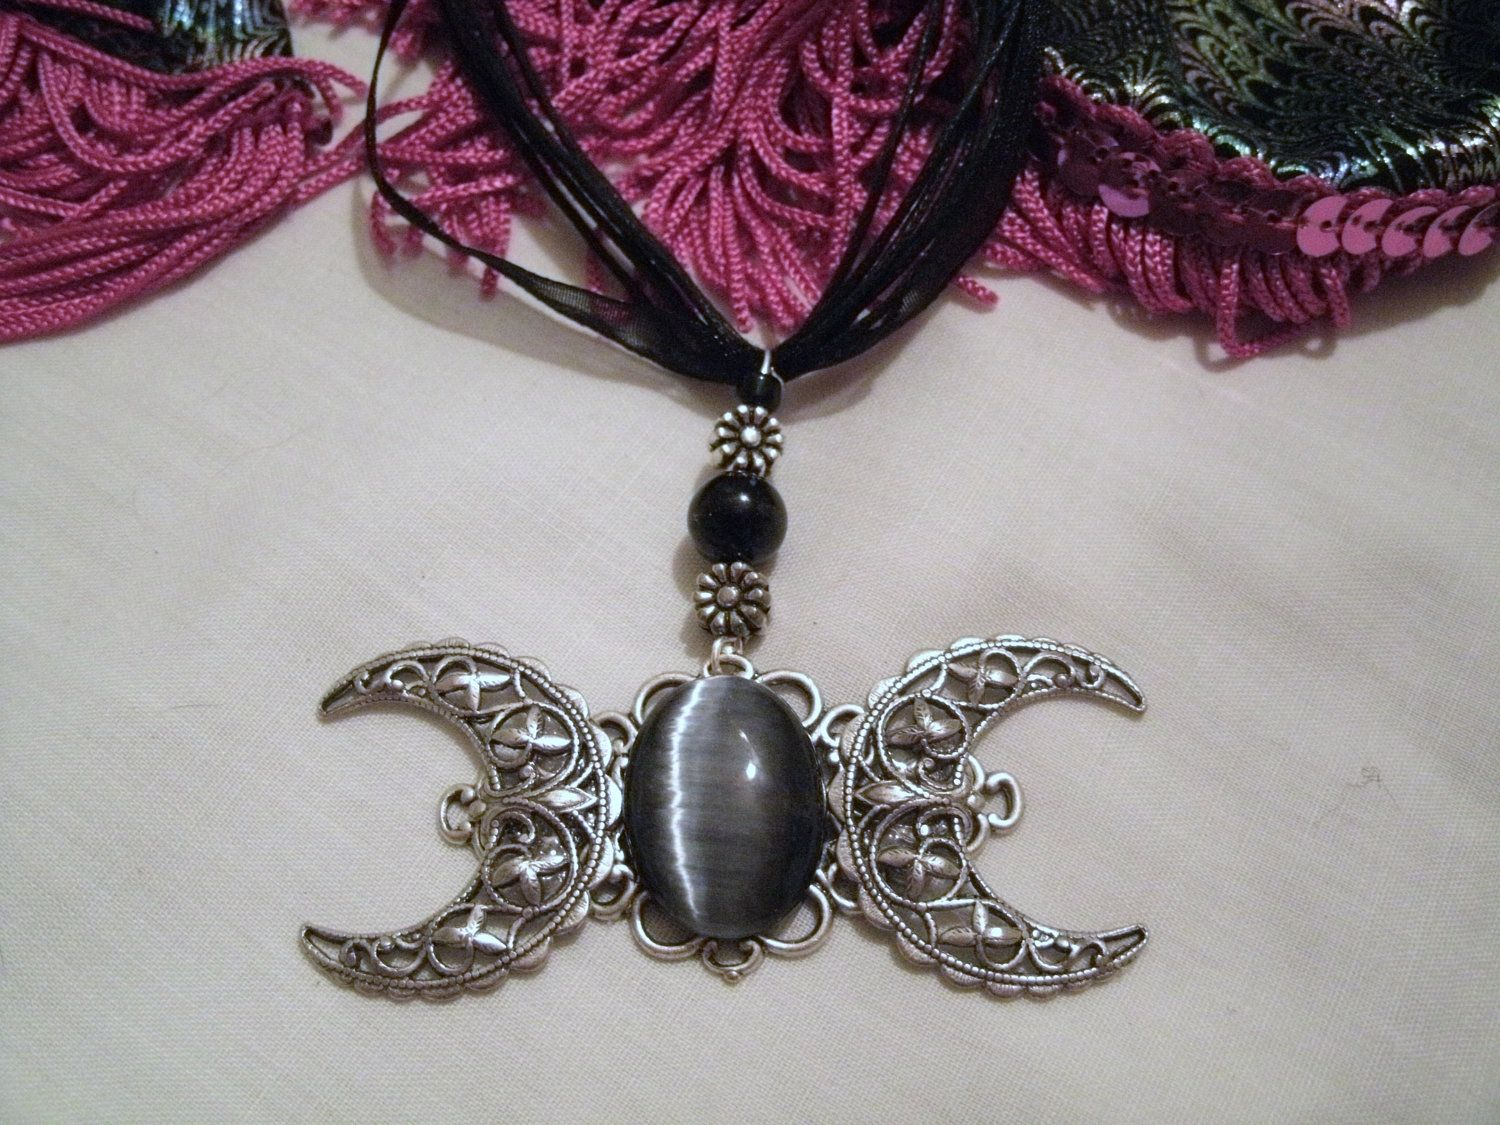 pagan locket choker moon necklace pentagram from goddess wiccan jewelry pentacle triple memories magic pendant glass photo product frame